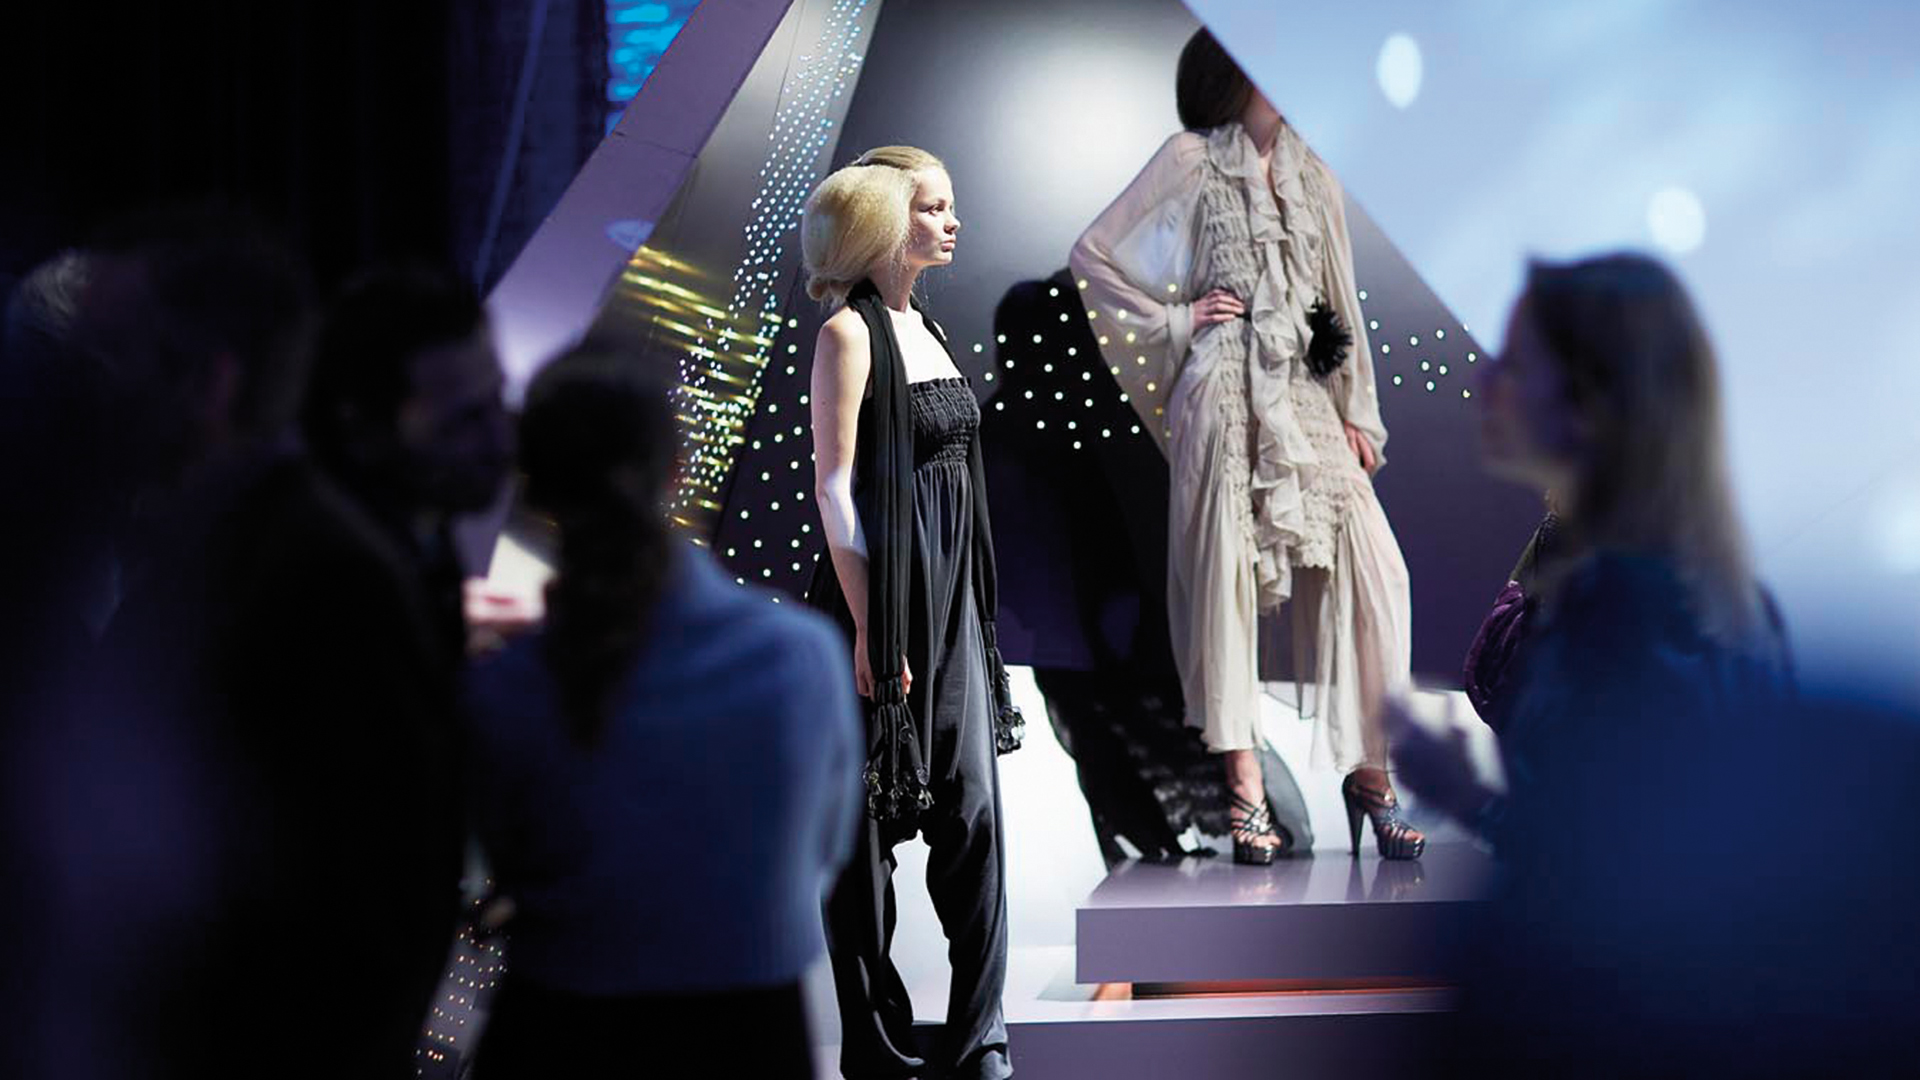 Dart stages the Illuminesca 2008 exhibition for Philips